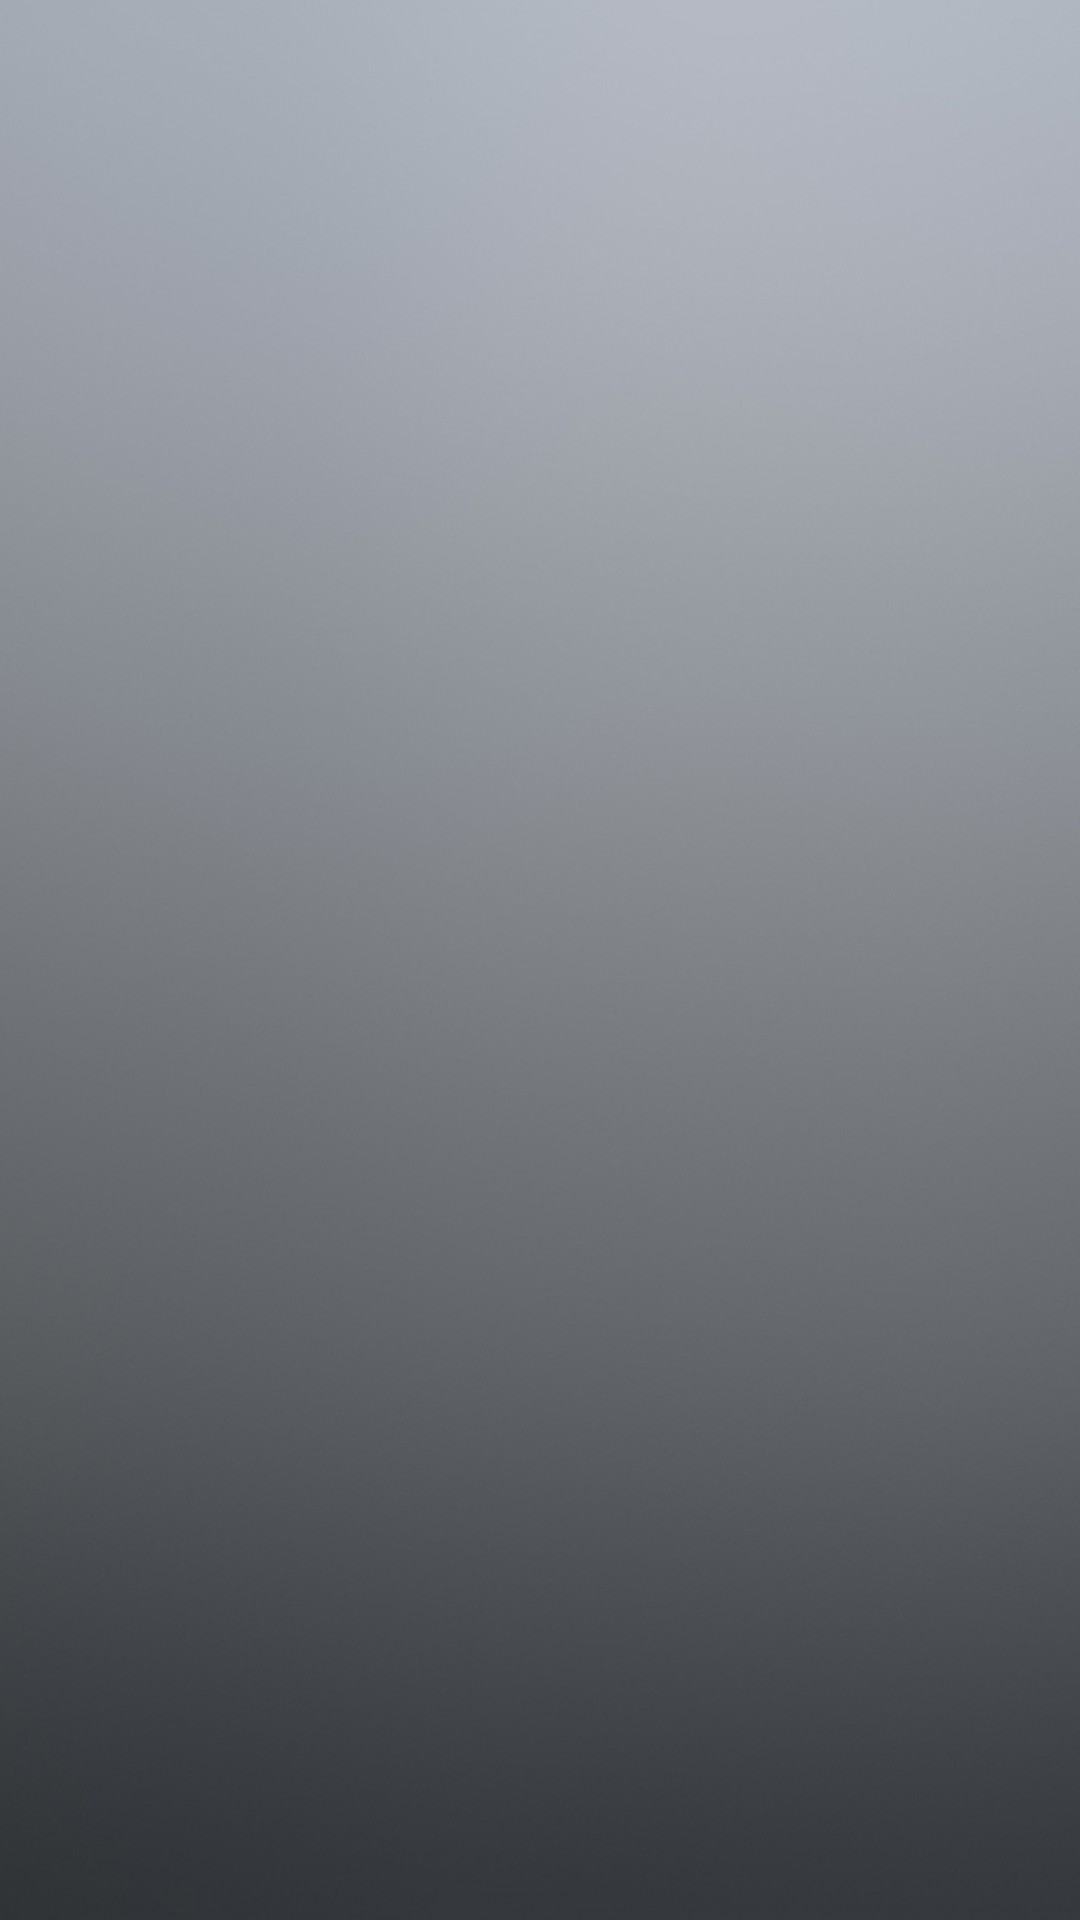 Gradient Grey Wallpaper for SONY Xperia Z2